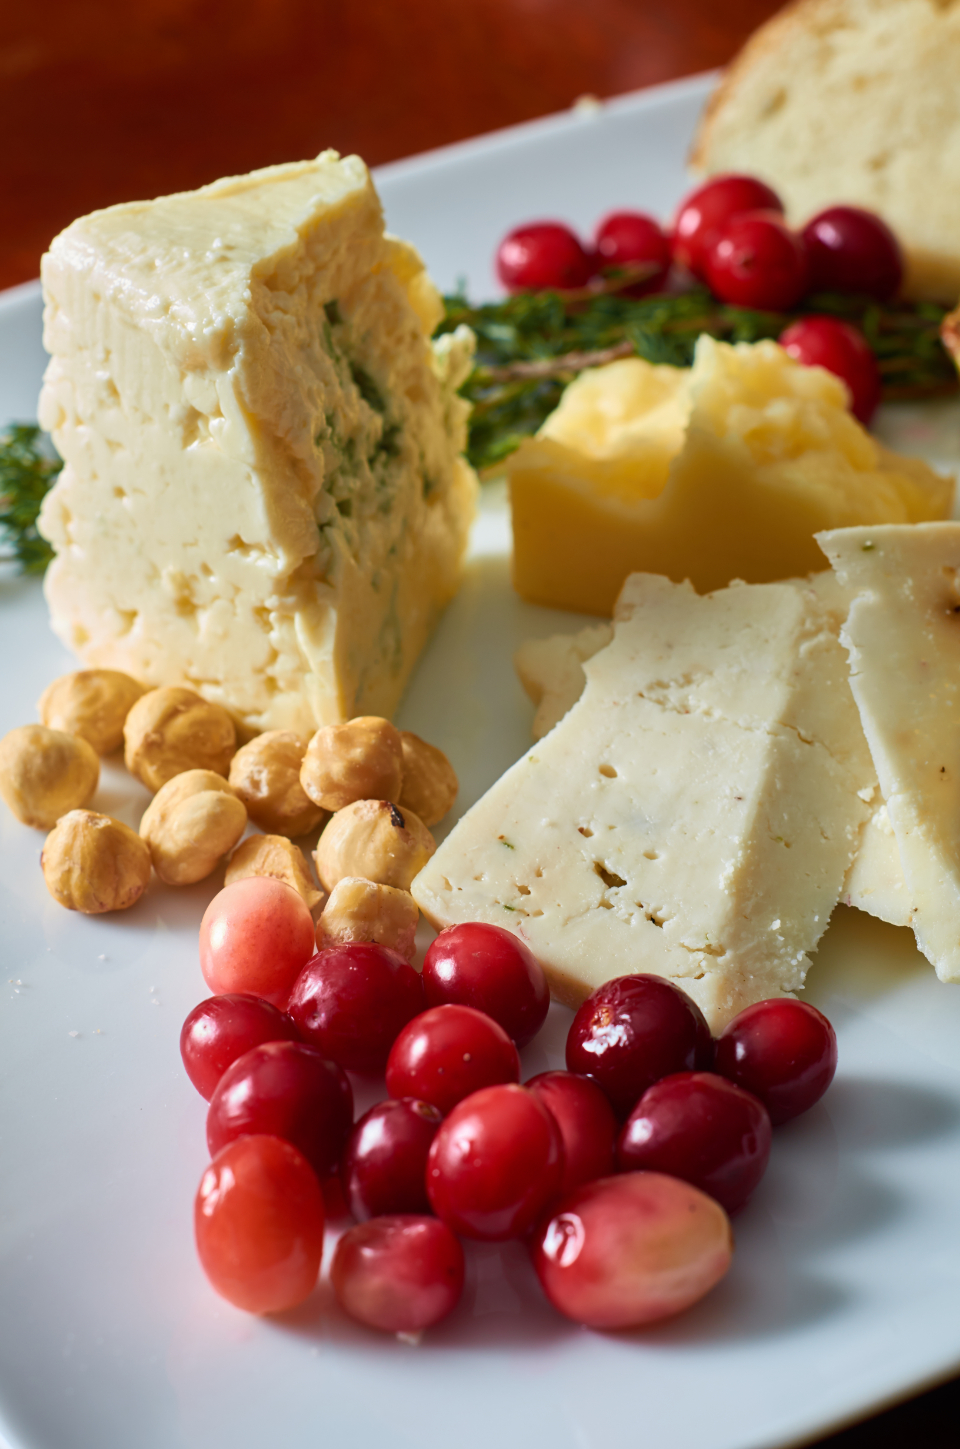 cheese plate platter assortment cheeses appetizer food dairy fruit cheddar grapes blue brie gourmet